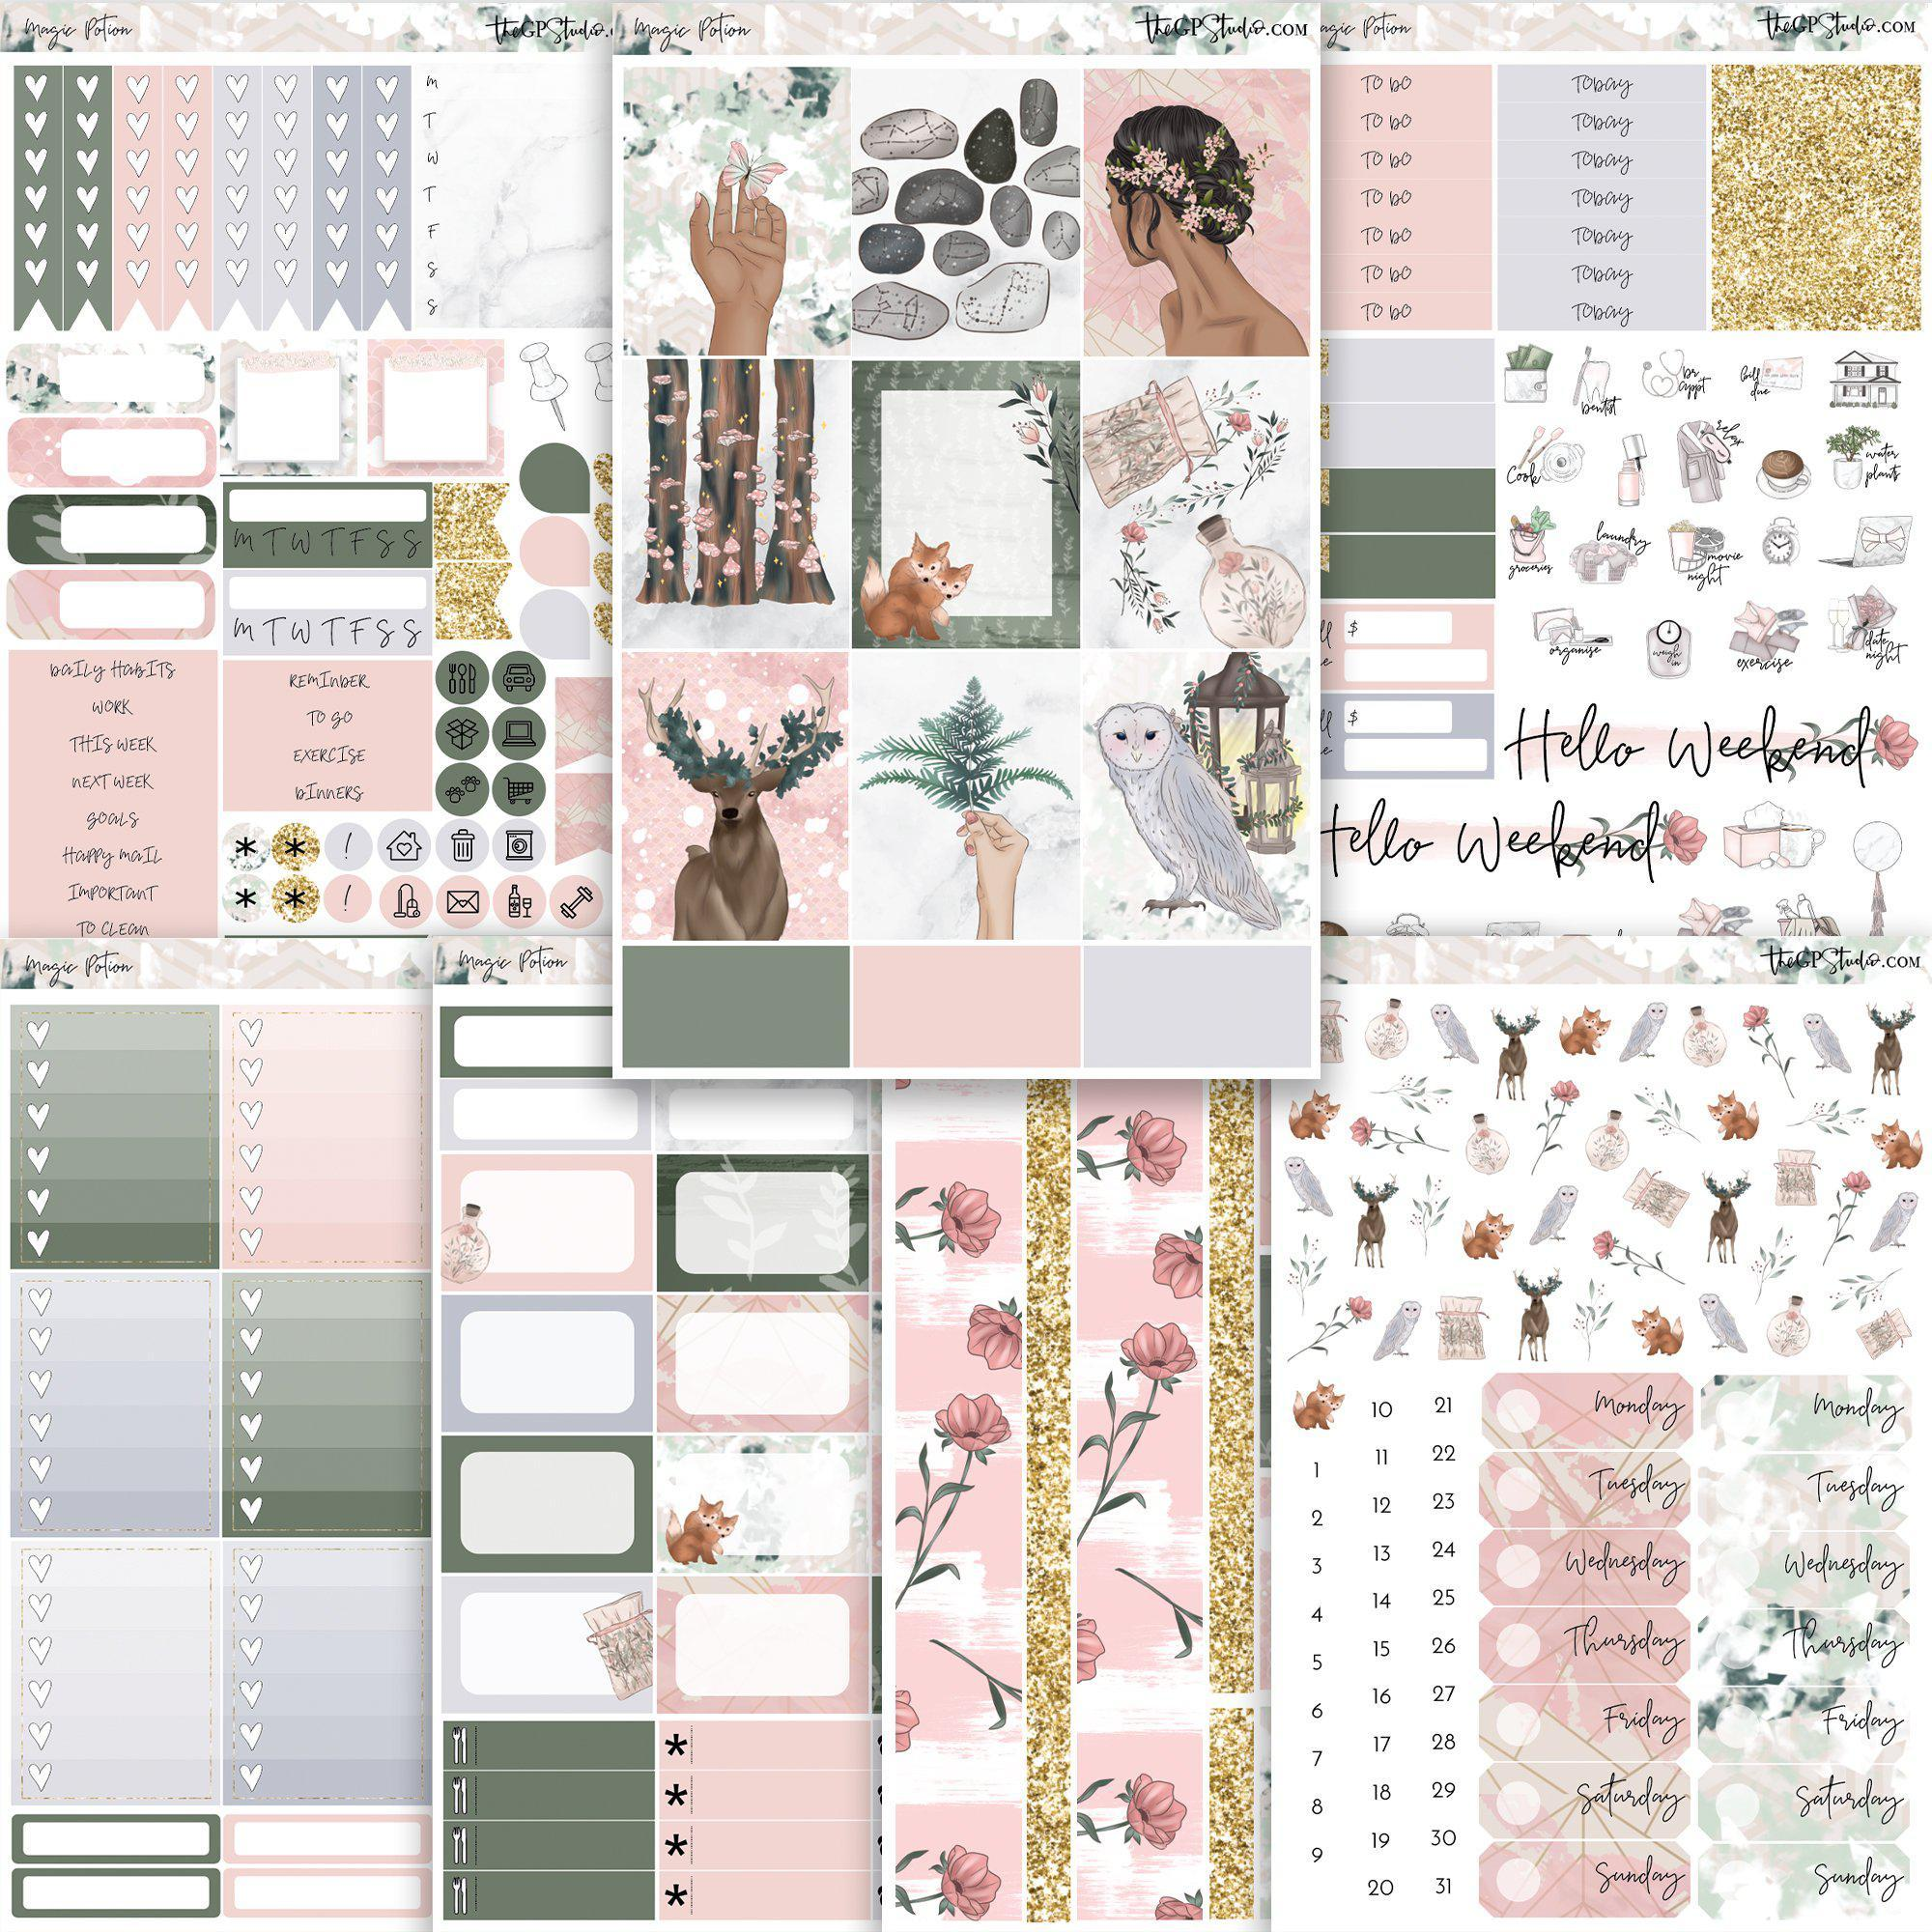 MAGIC POTION Planner Sticker Kit-The GP Studio